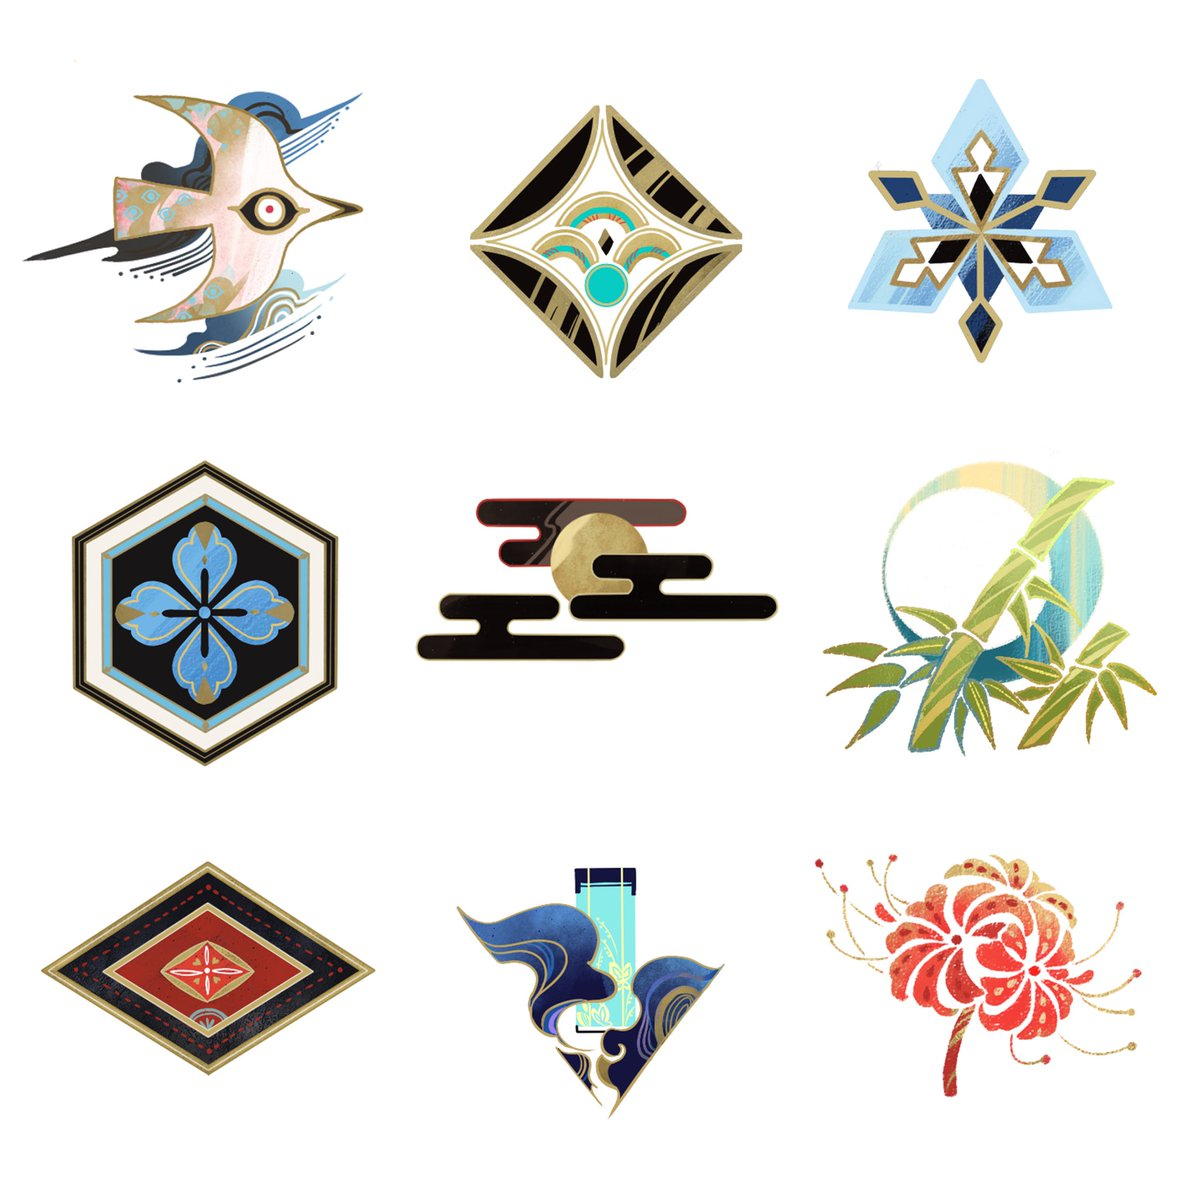 #illustrationart #design #icon #陰陽師 icon design for the game Onmyoji ~each one represents a different demon